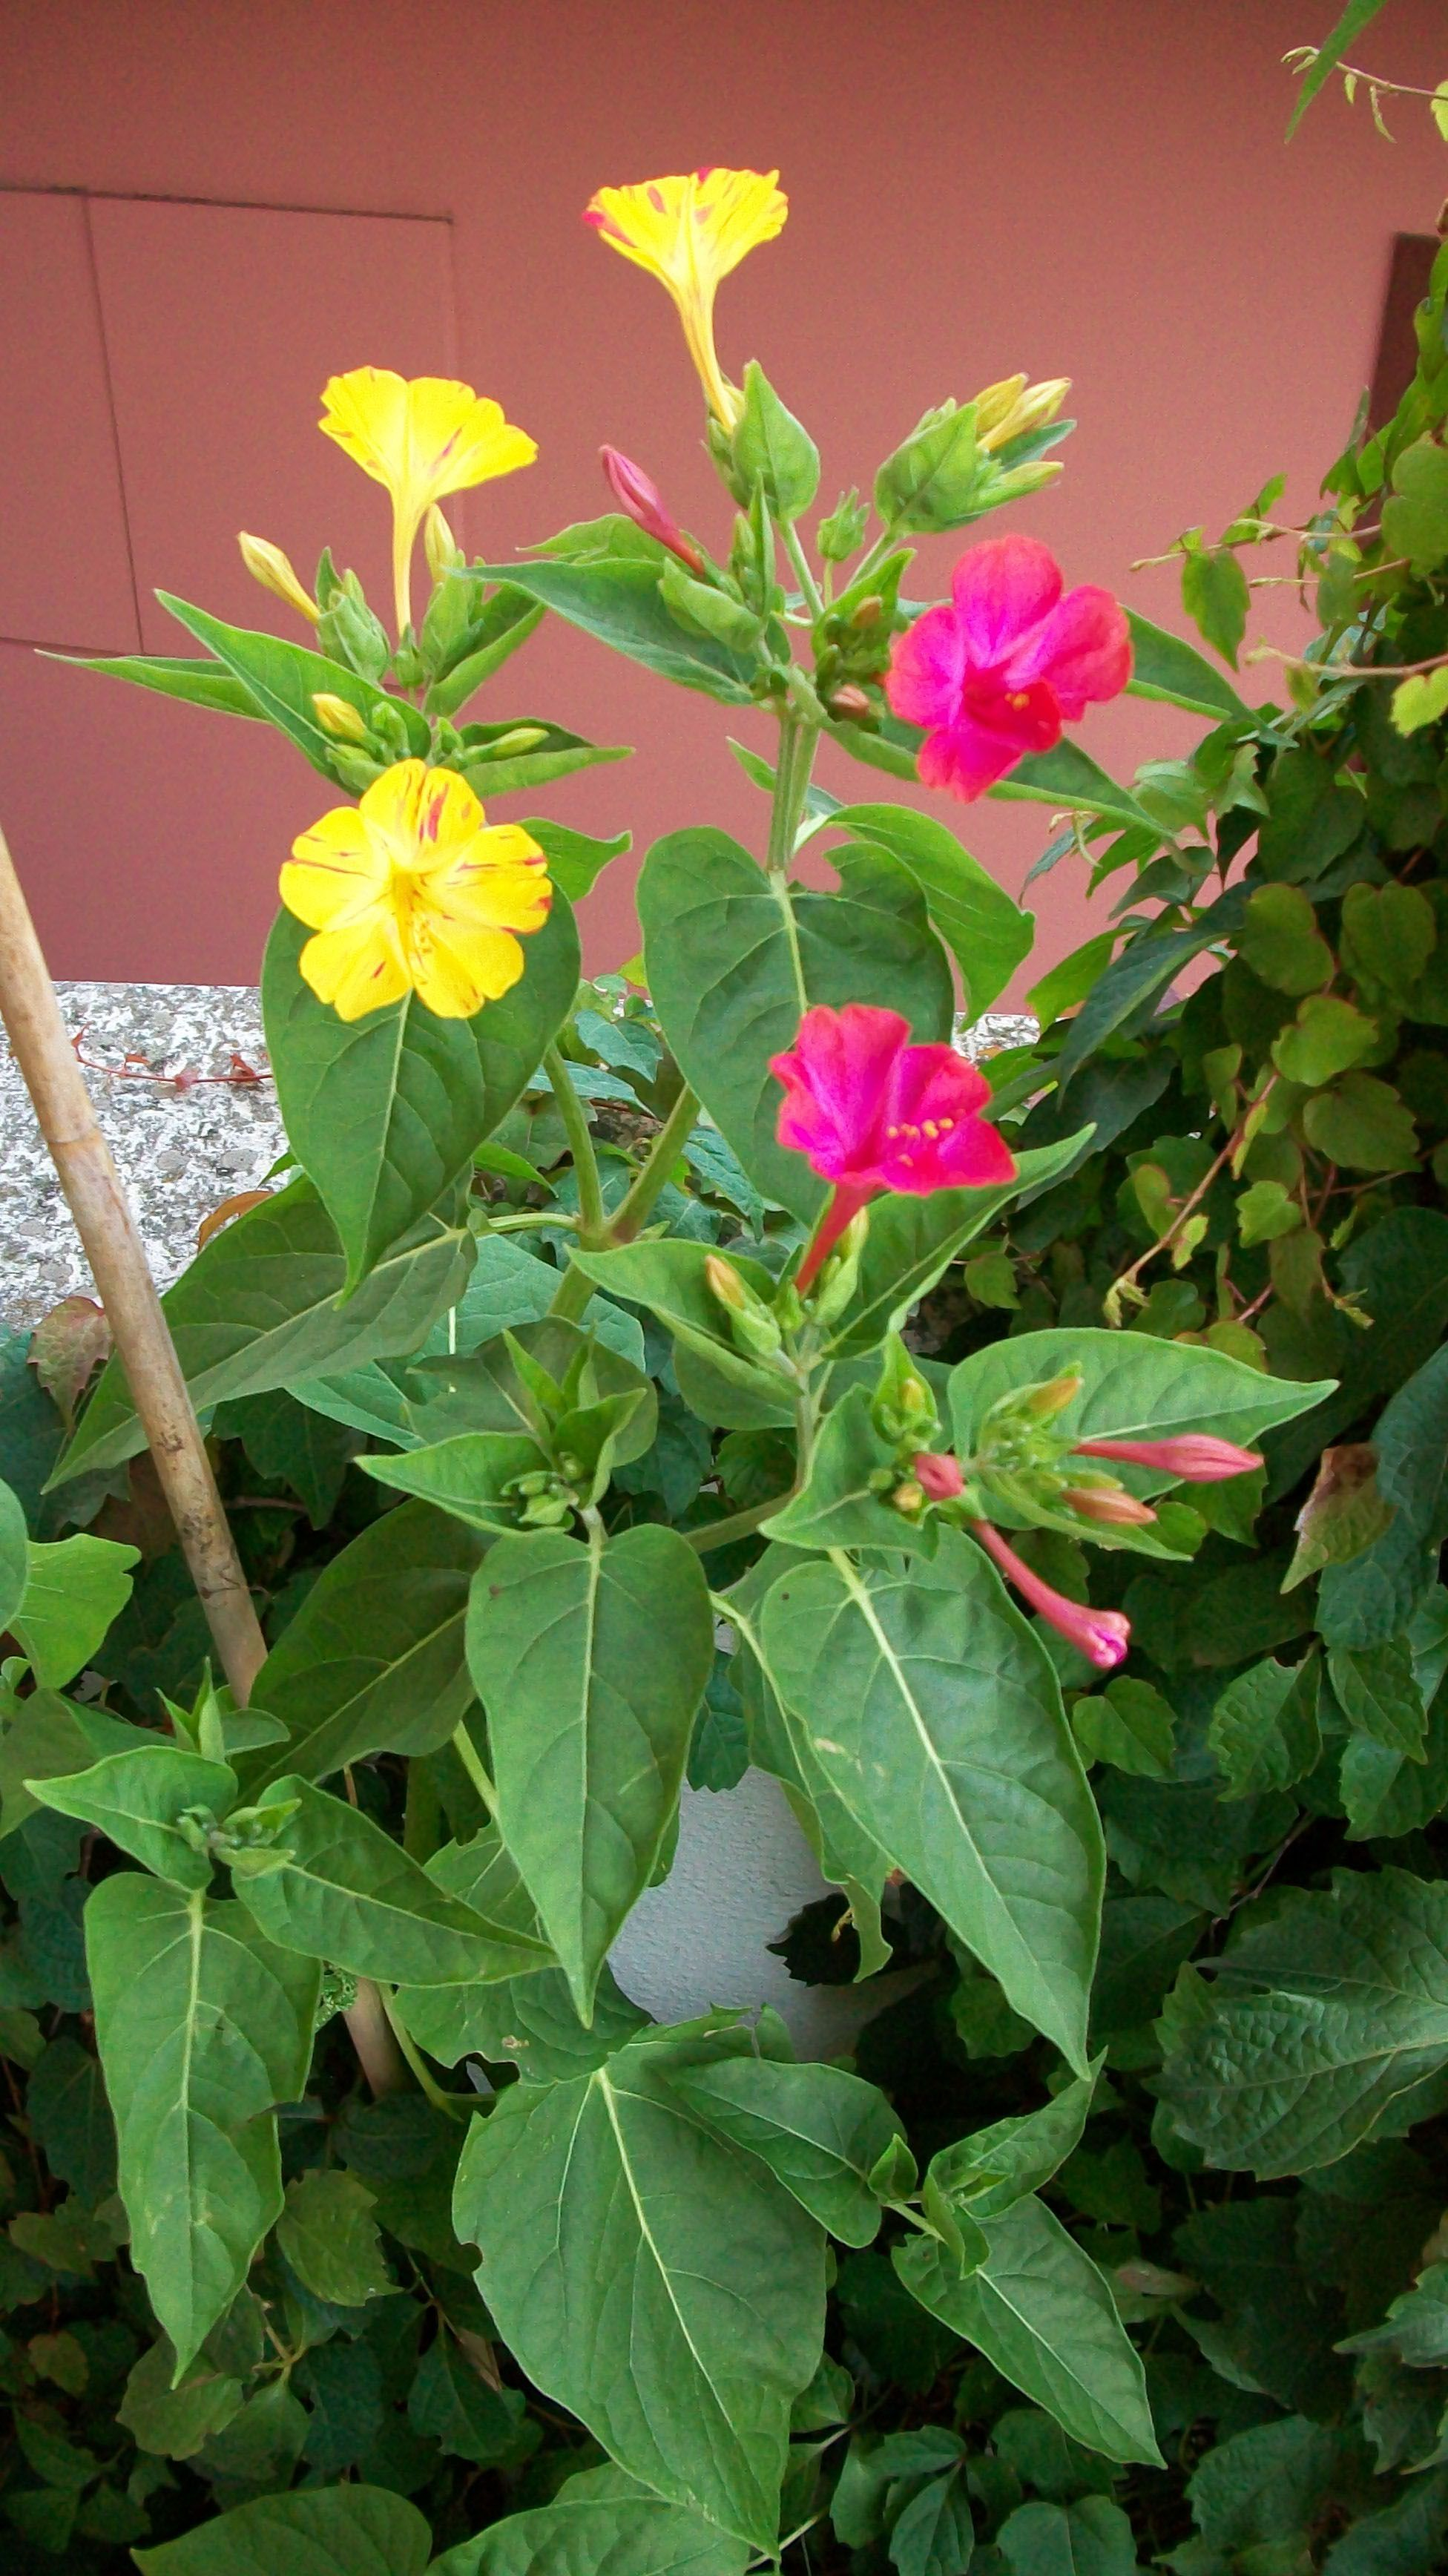 Four Oclock Flowers Or Marvel Of Peru We Call These The Koolaide